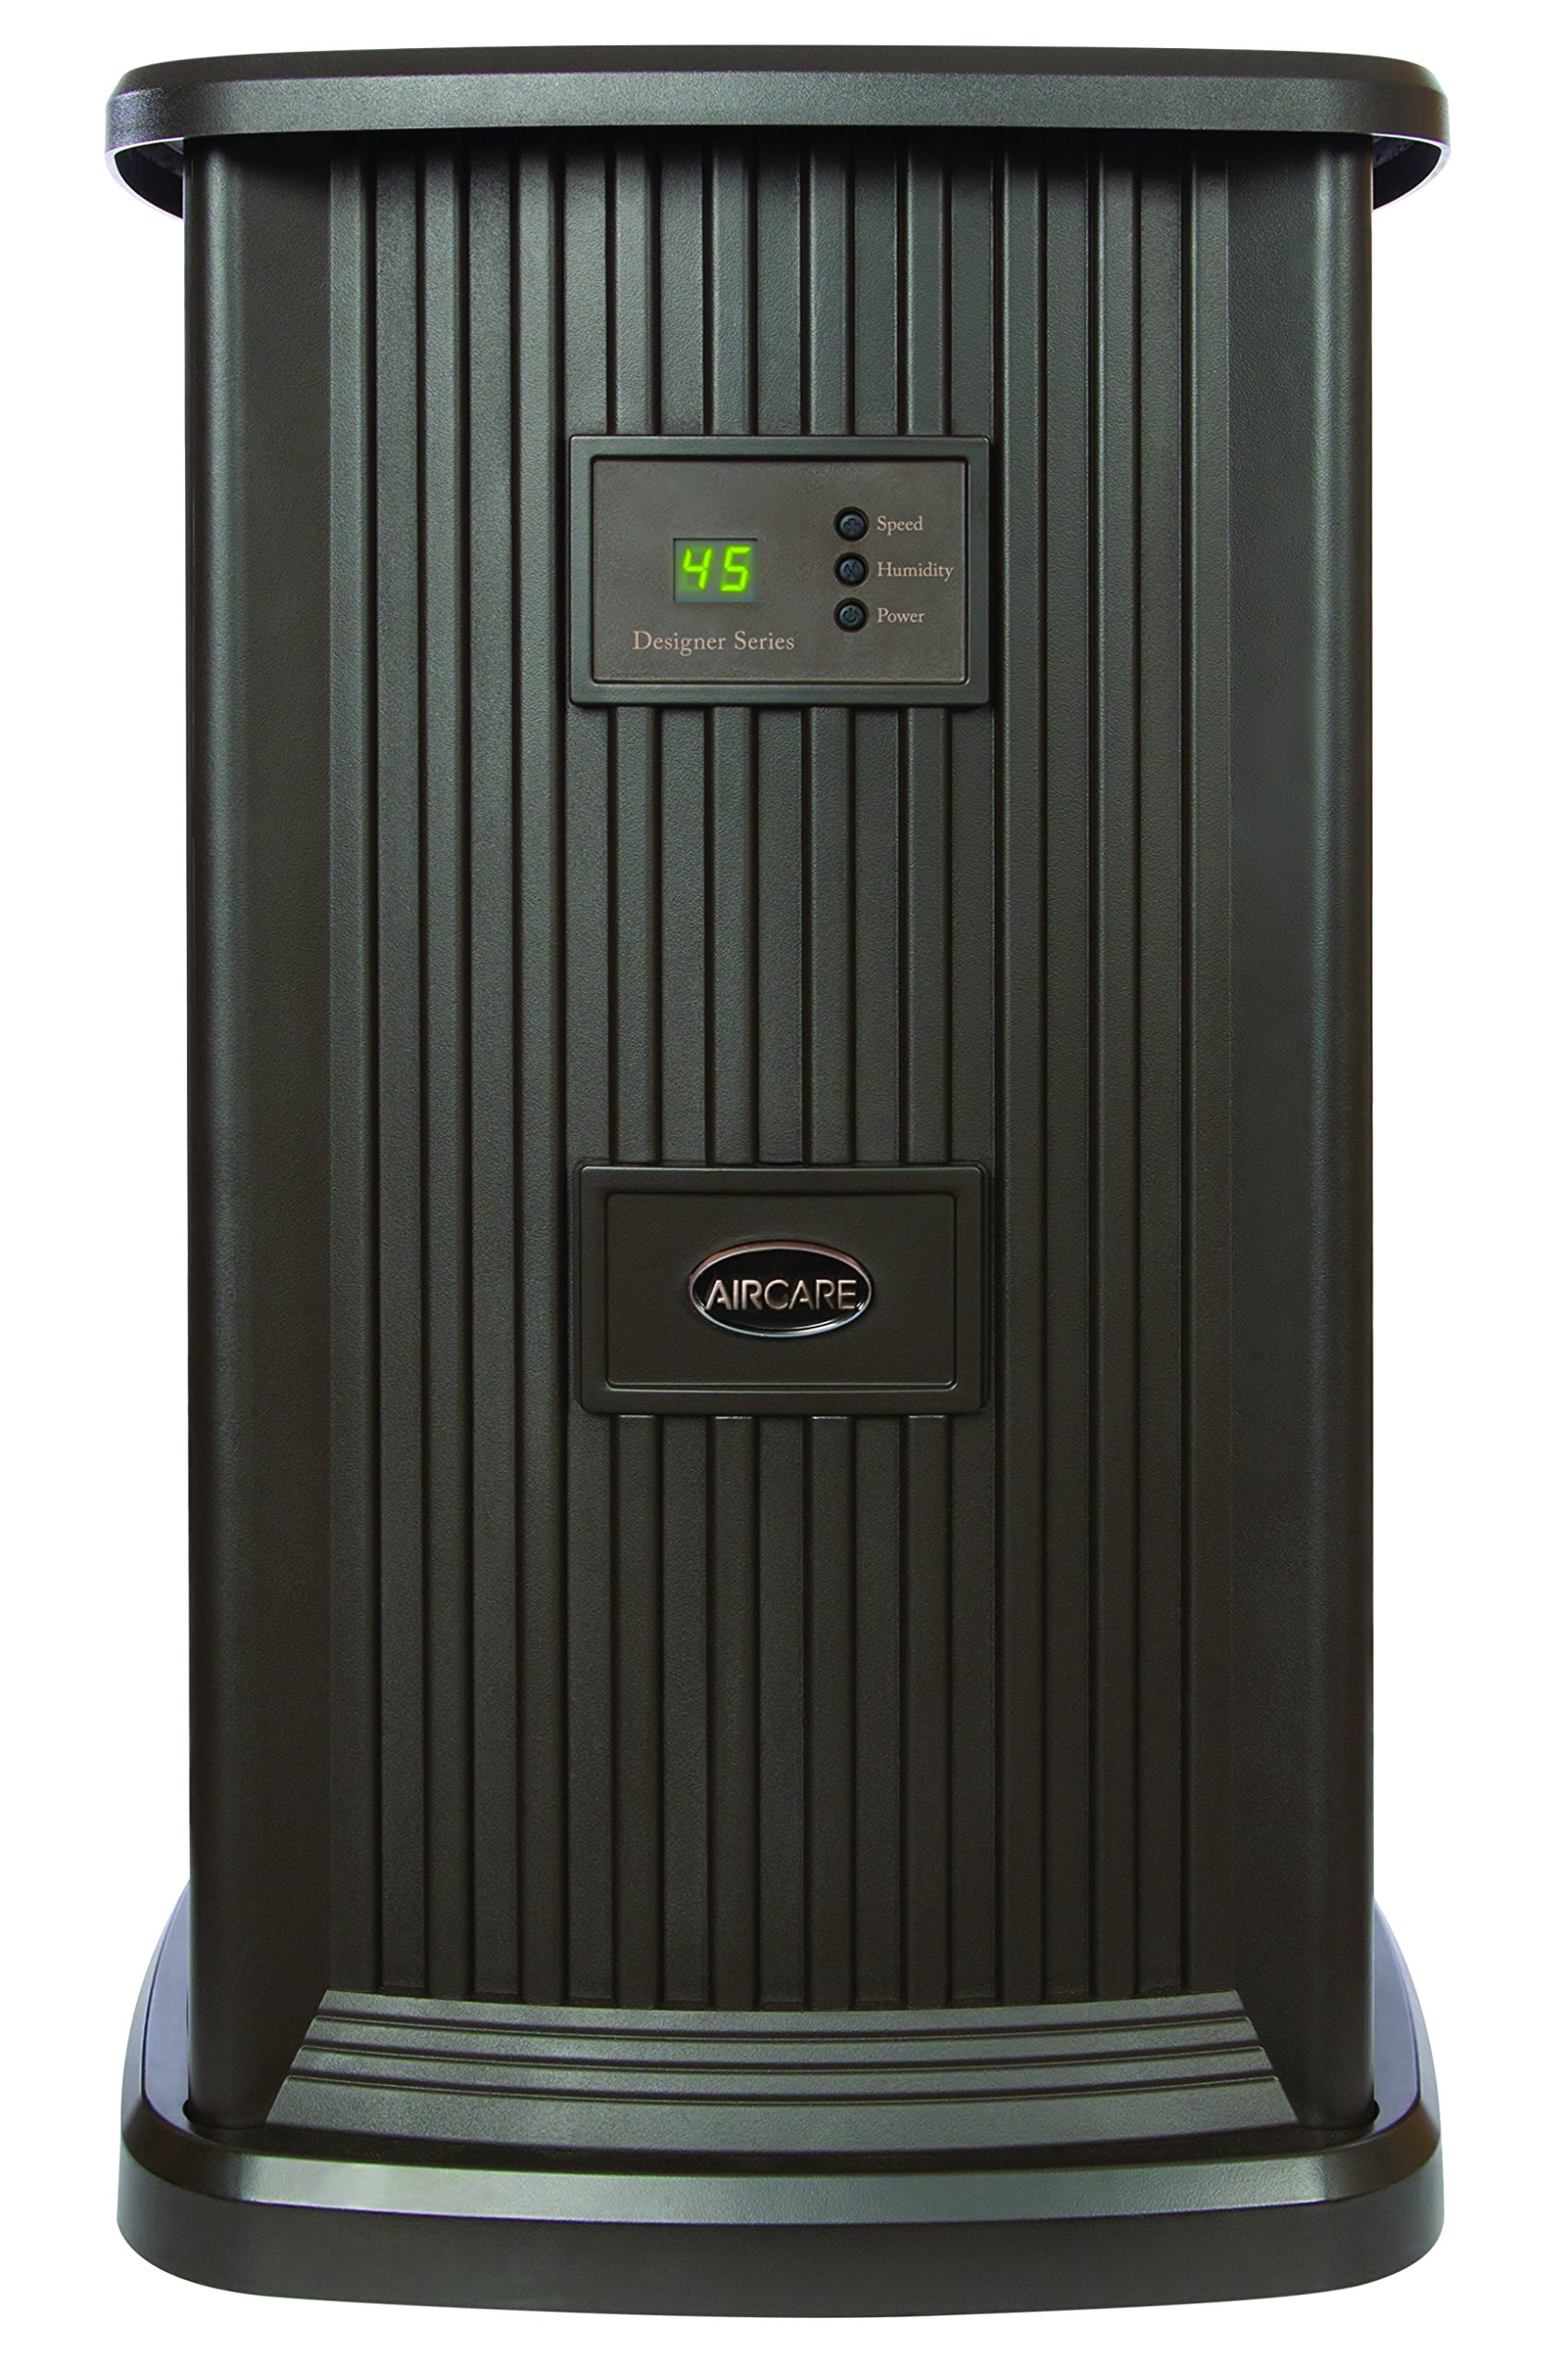 AIRCARE EP9 800 Digital Whole-House Pedestal-Style Evaporative Humidifier, Espresso by Essick Air (Image #1)